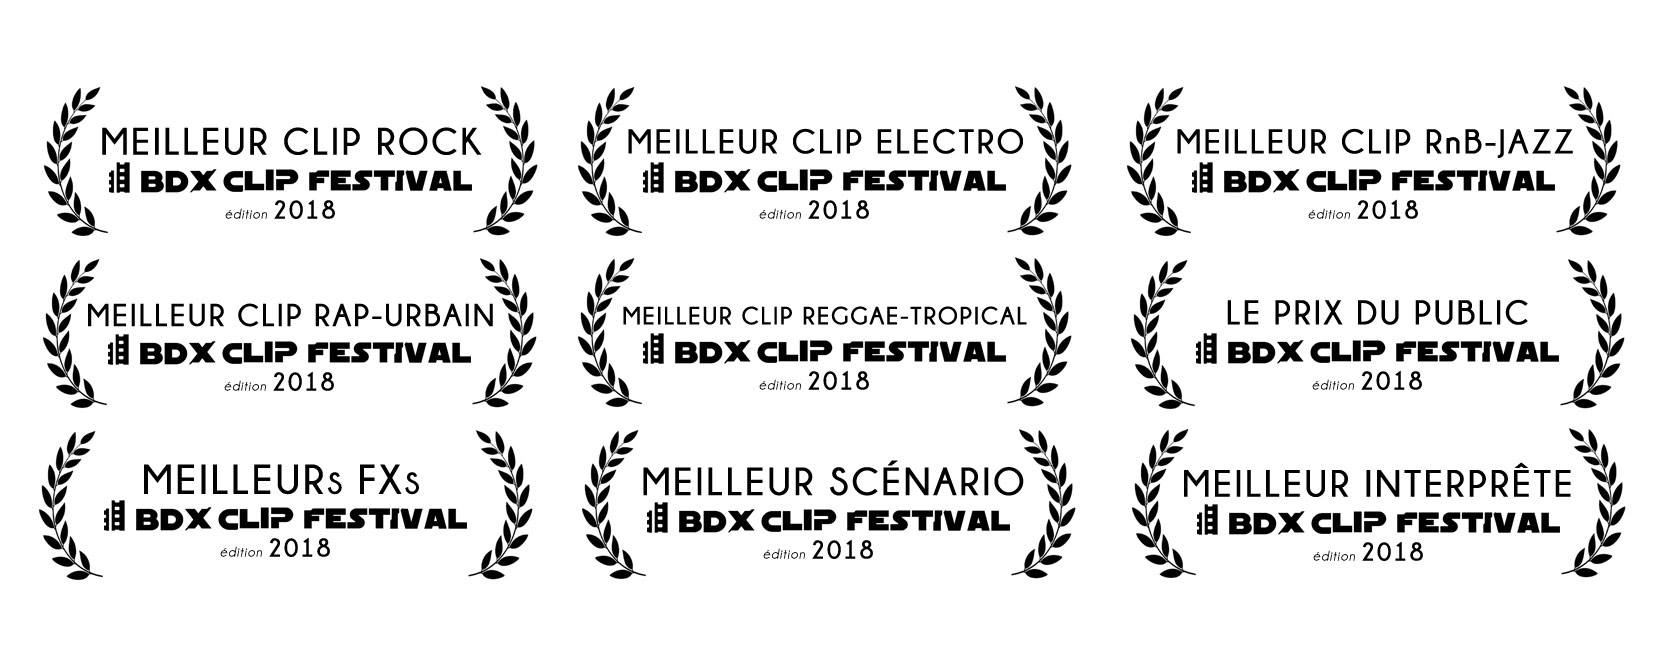 9-categories-bdx-clip-festival